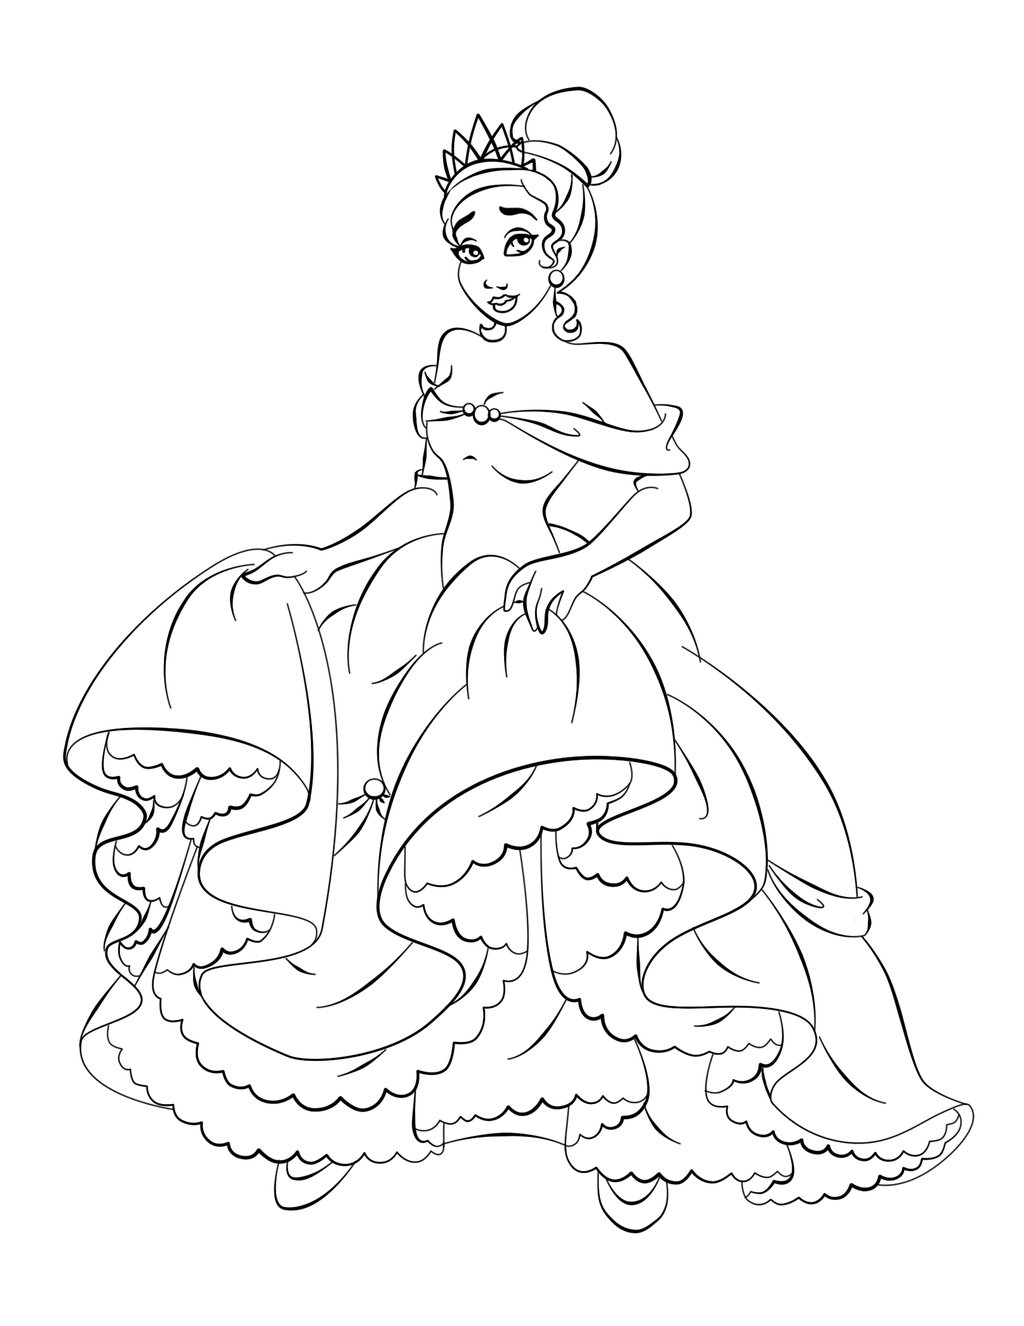 coloring pictures of princesses disney princess tiana coloring pages to girls princesses pictures coloring of